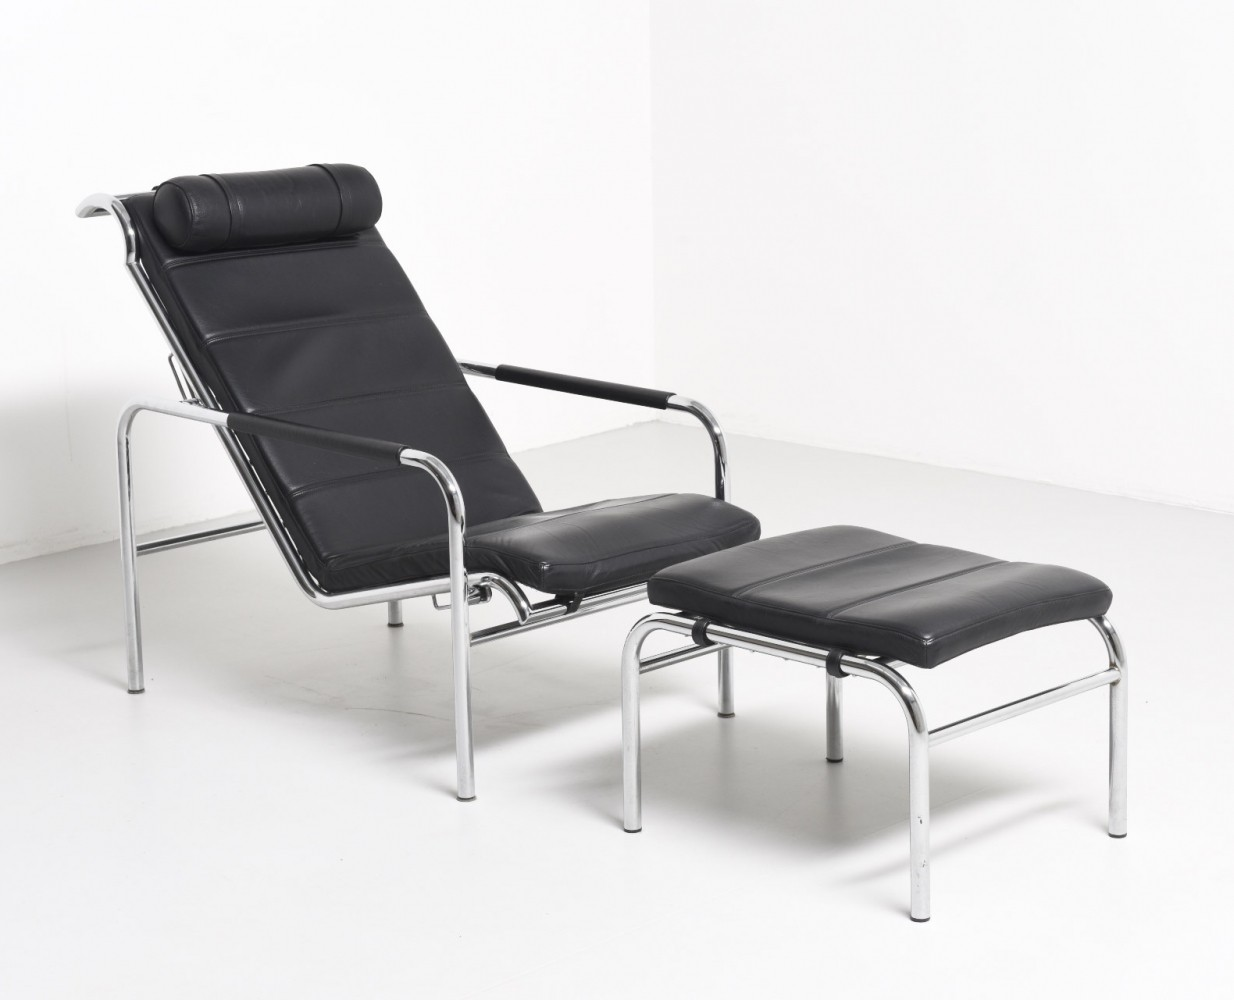 Black Leather Lounge Chair Ottoman by Gabriele Mucchi for Zanotta